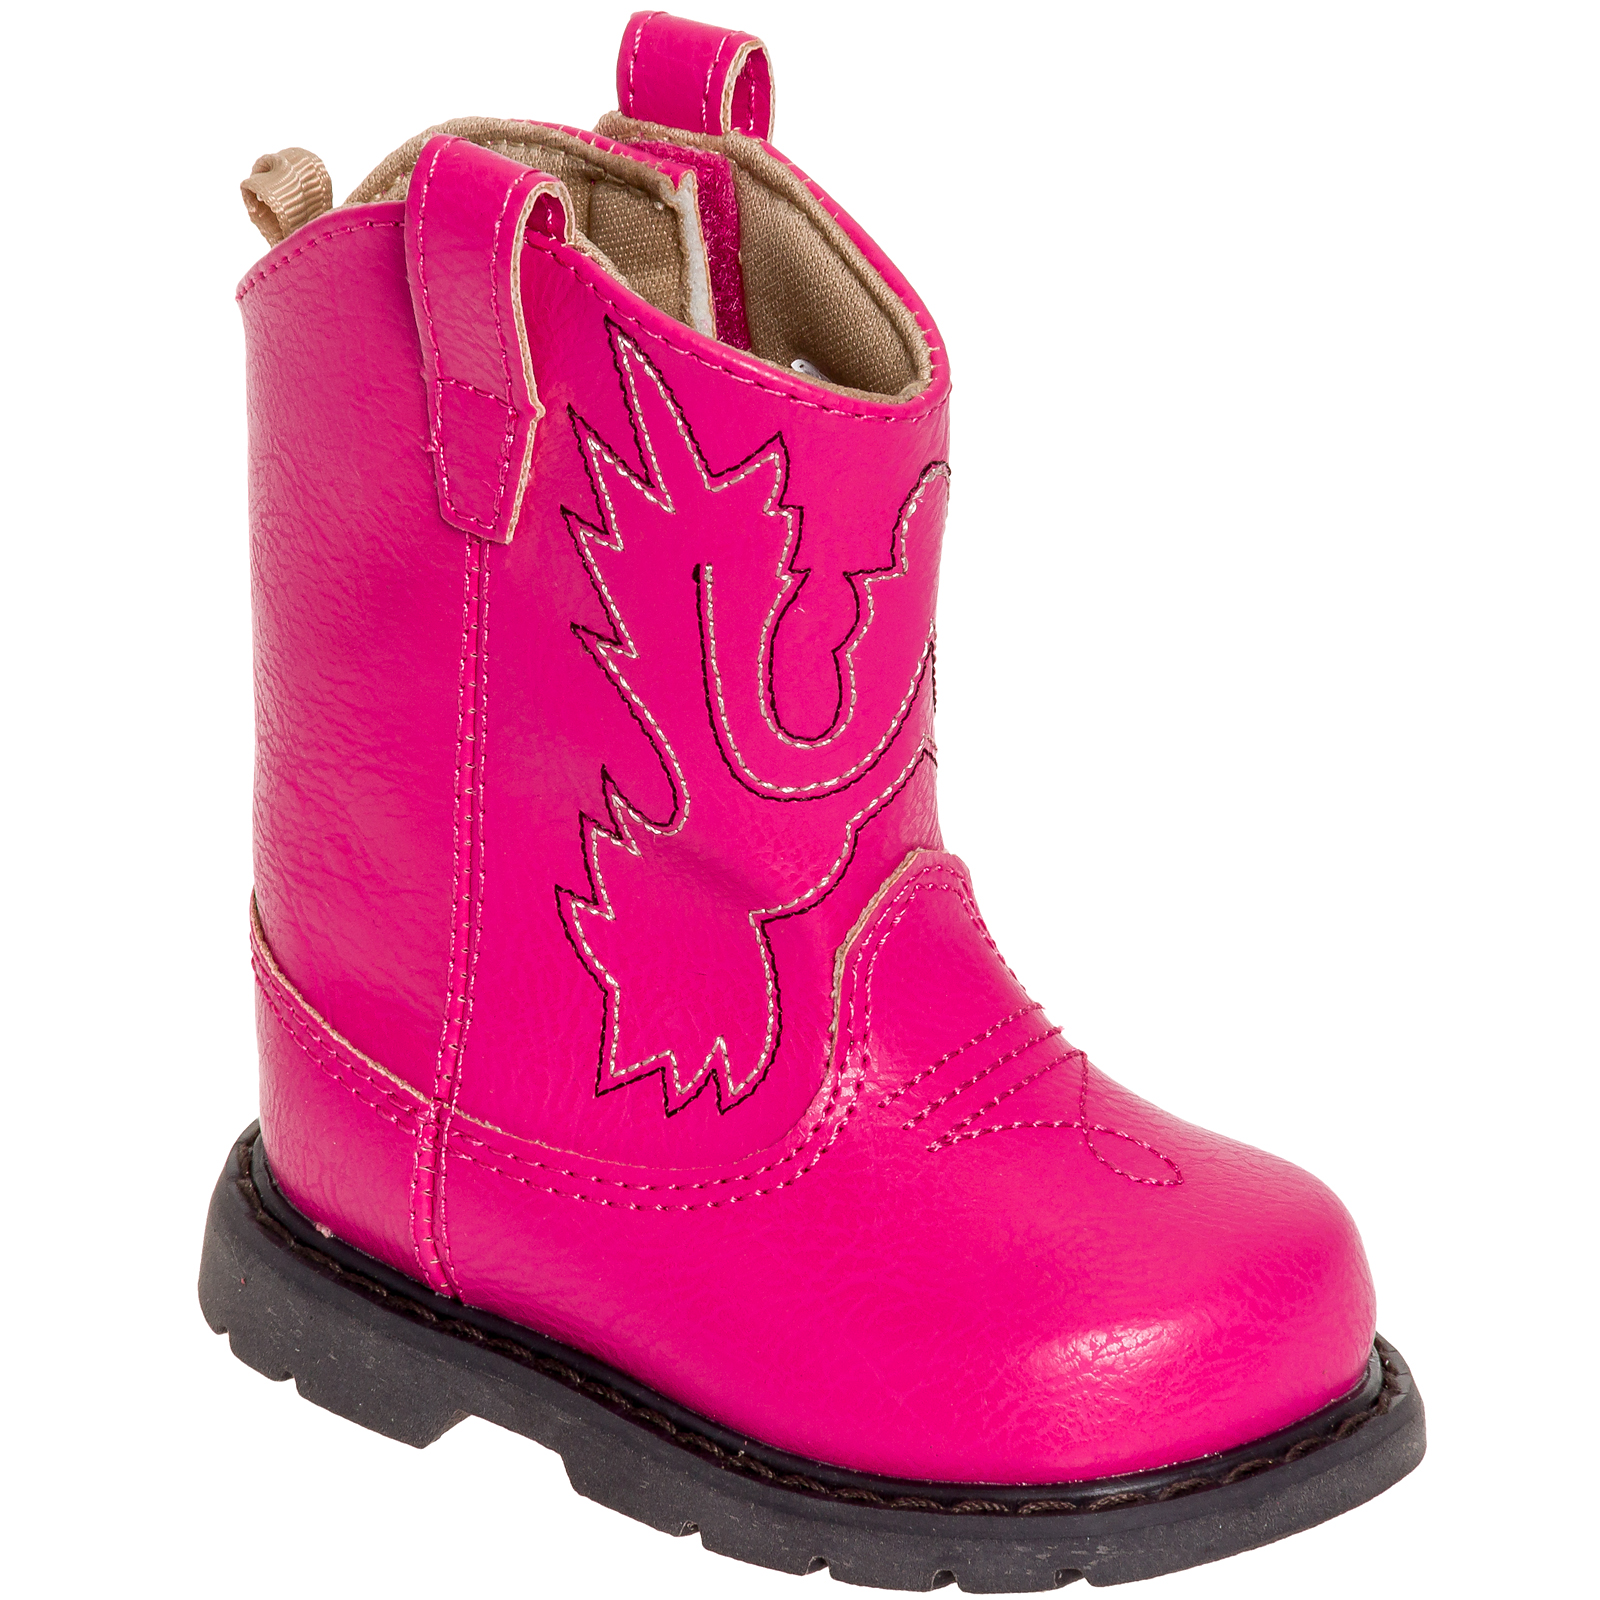 Baby Deer Infant Girls Toddler Western Cowboy Boot Shoes Fuchsia, 5 M US Toddler